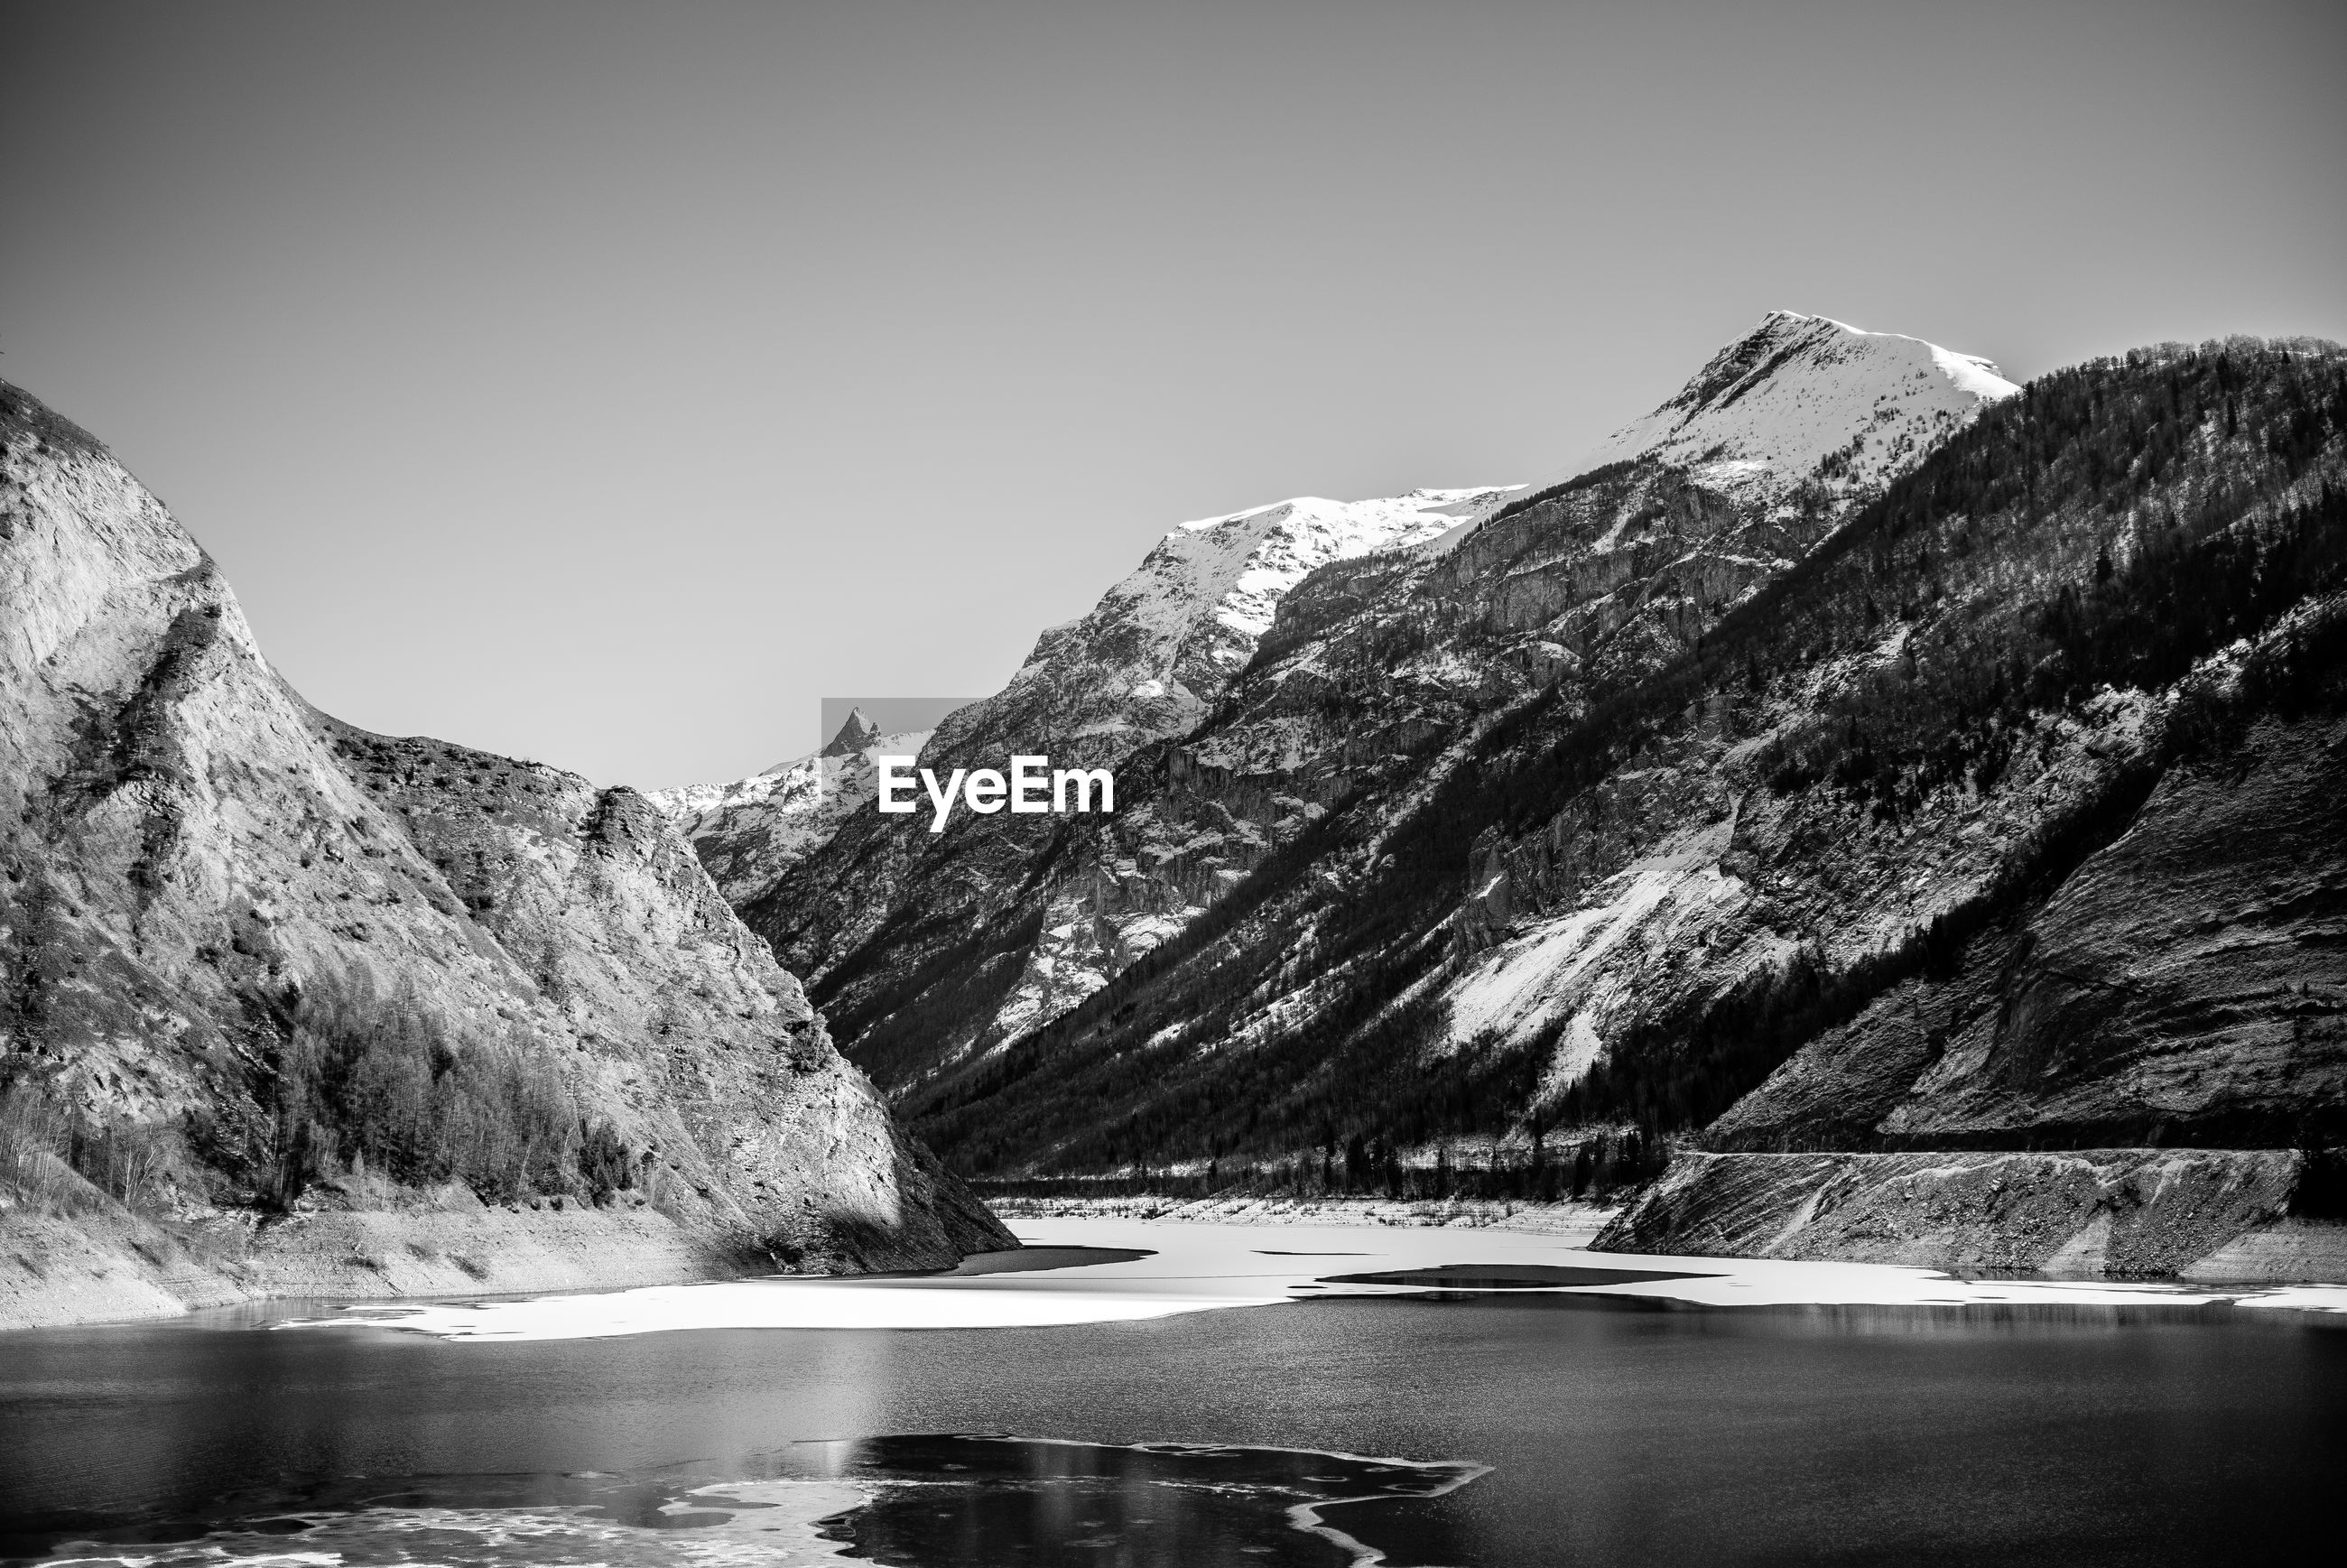 SCENIC VIEW OF LAKE AMIDST MOUNTAINS AGAINST CLEAR SKY